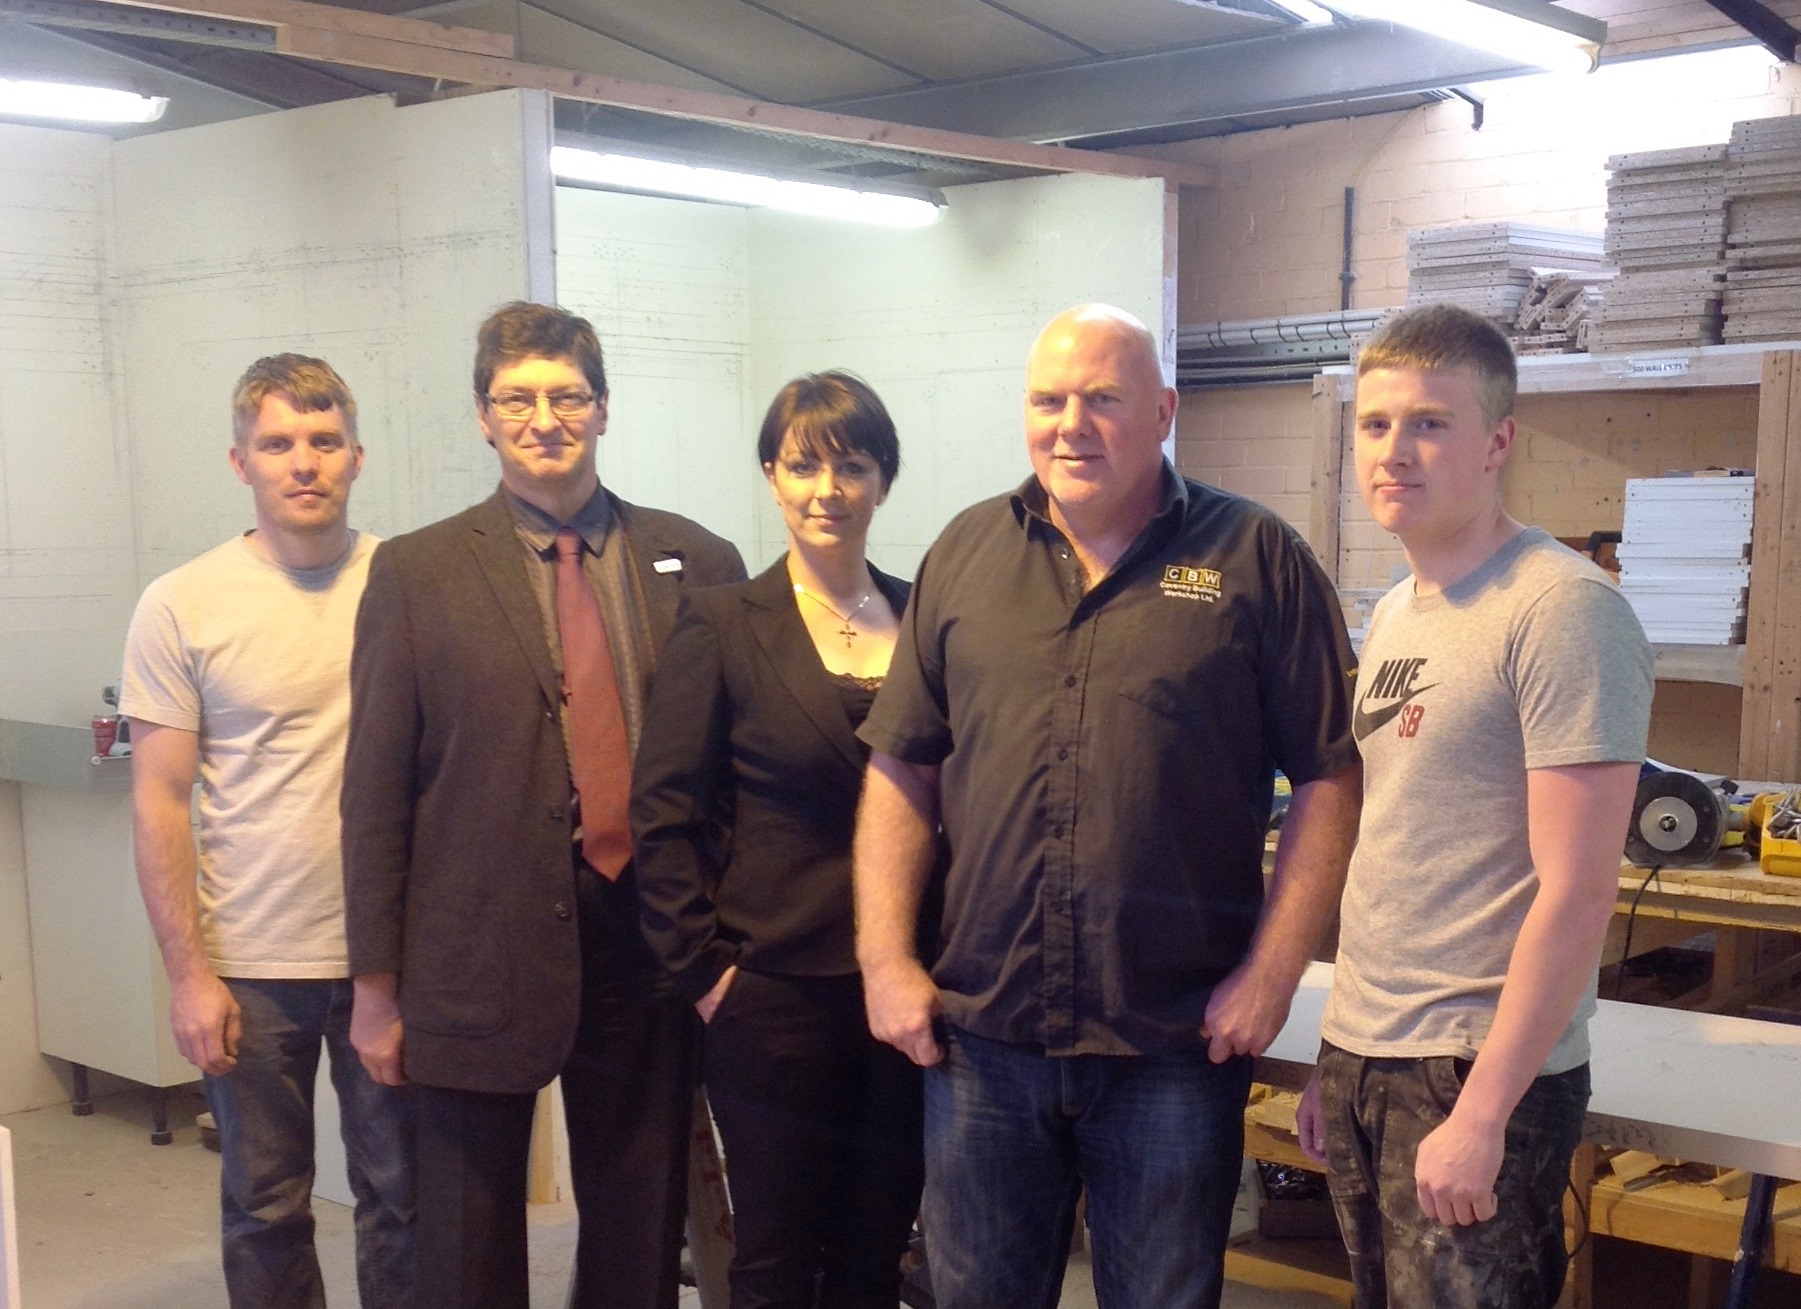 Cllr Kevin Maton, CBW manager Sara Tasker, Director Craig Foster and two learners at the Coventry Building Workshop.